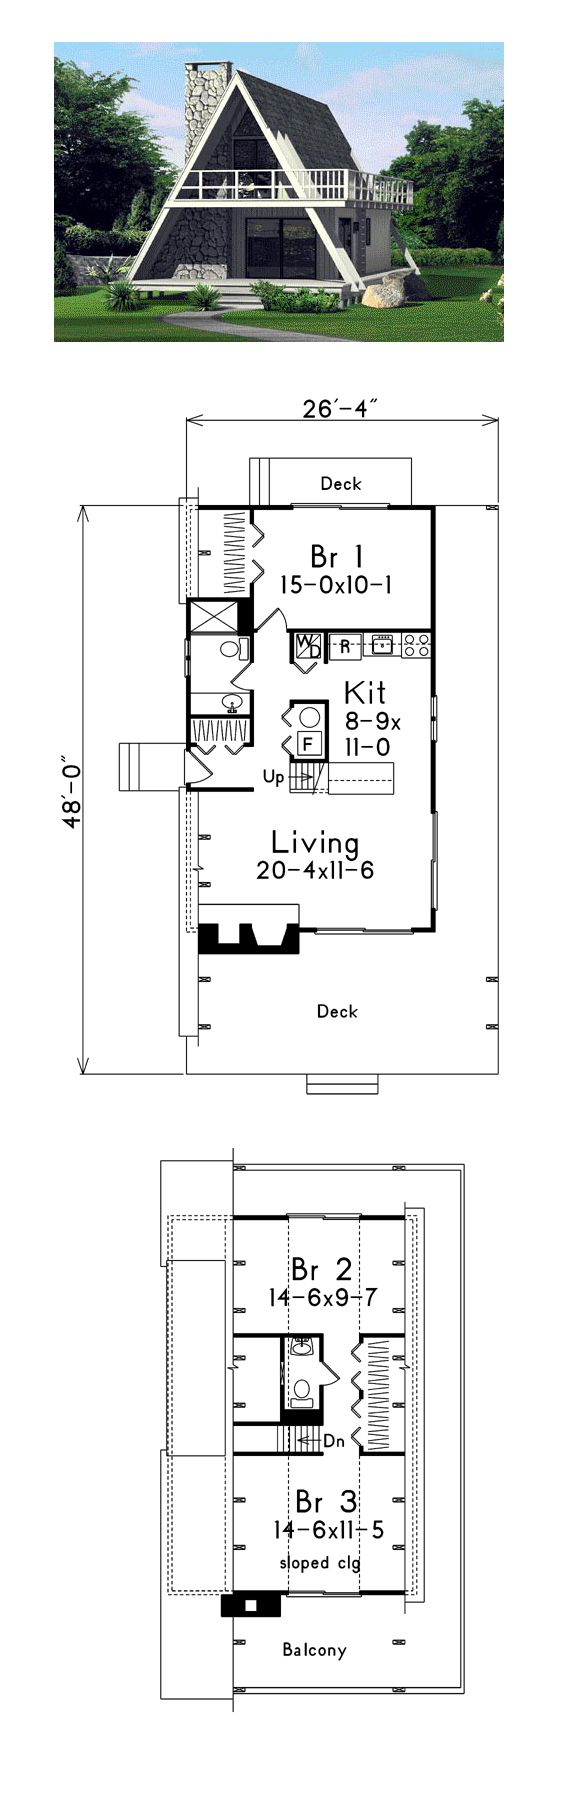 House plans bedrooms and house on pinterest for A frame house plans with basement